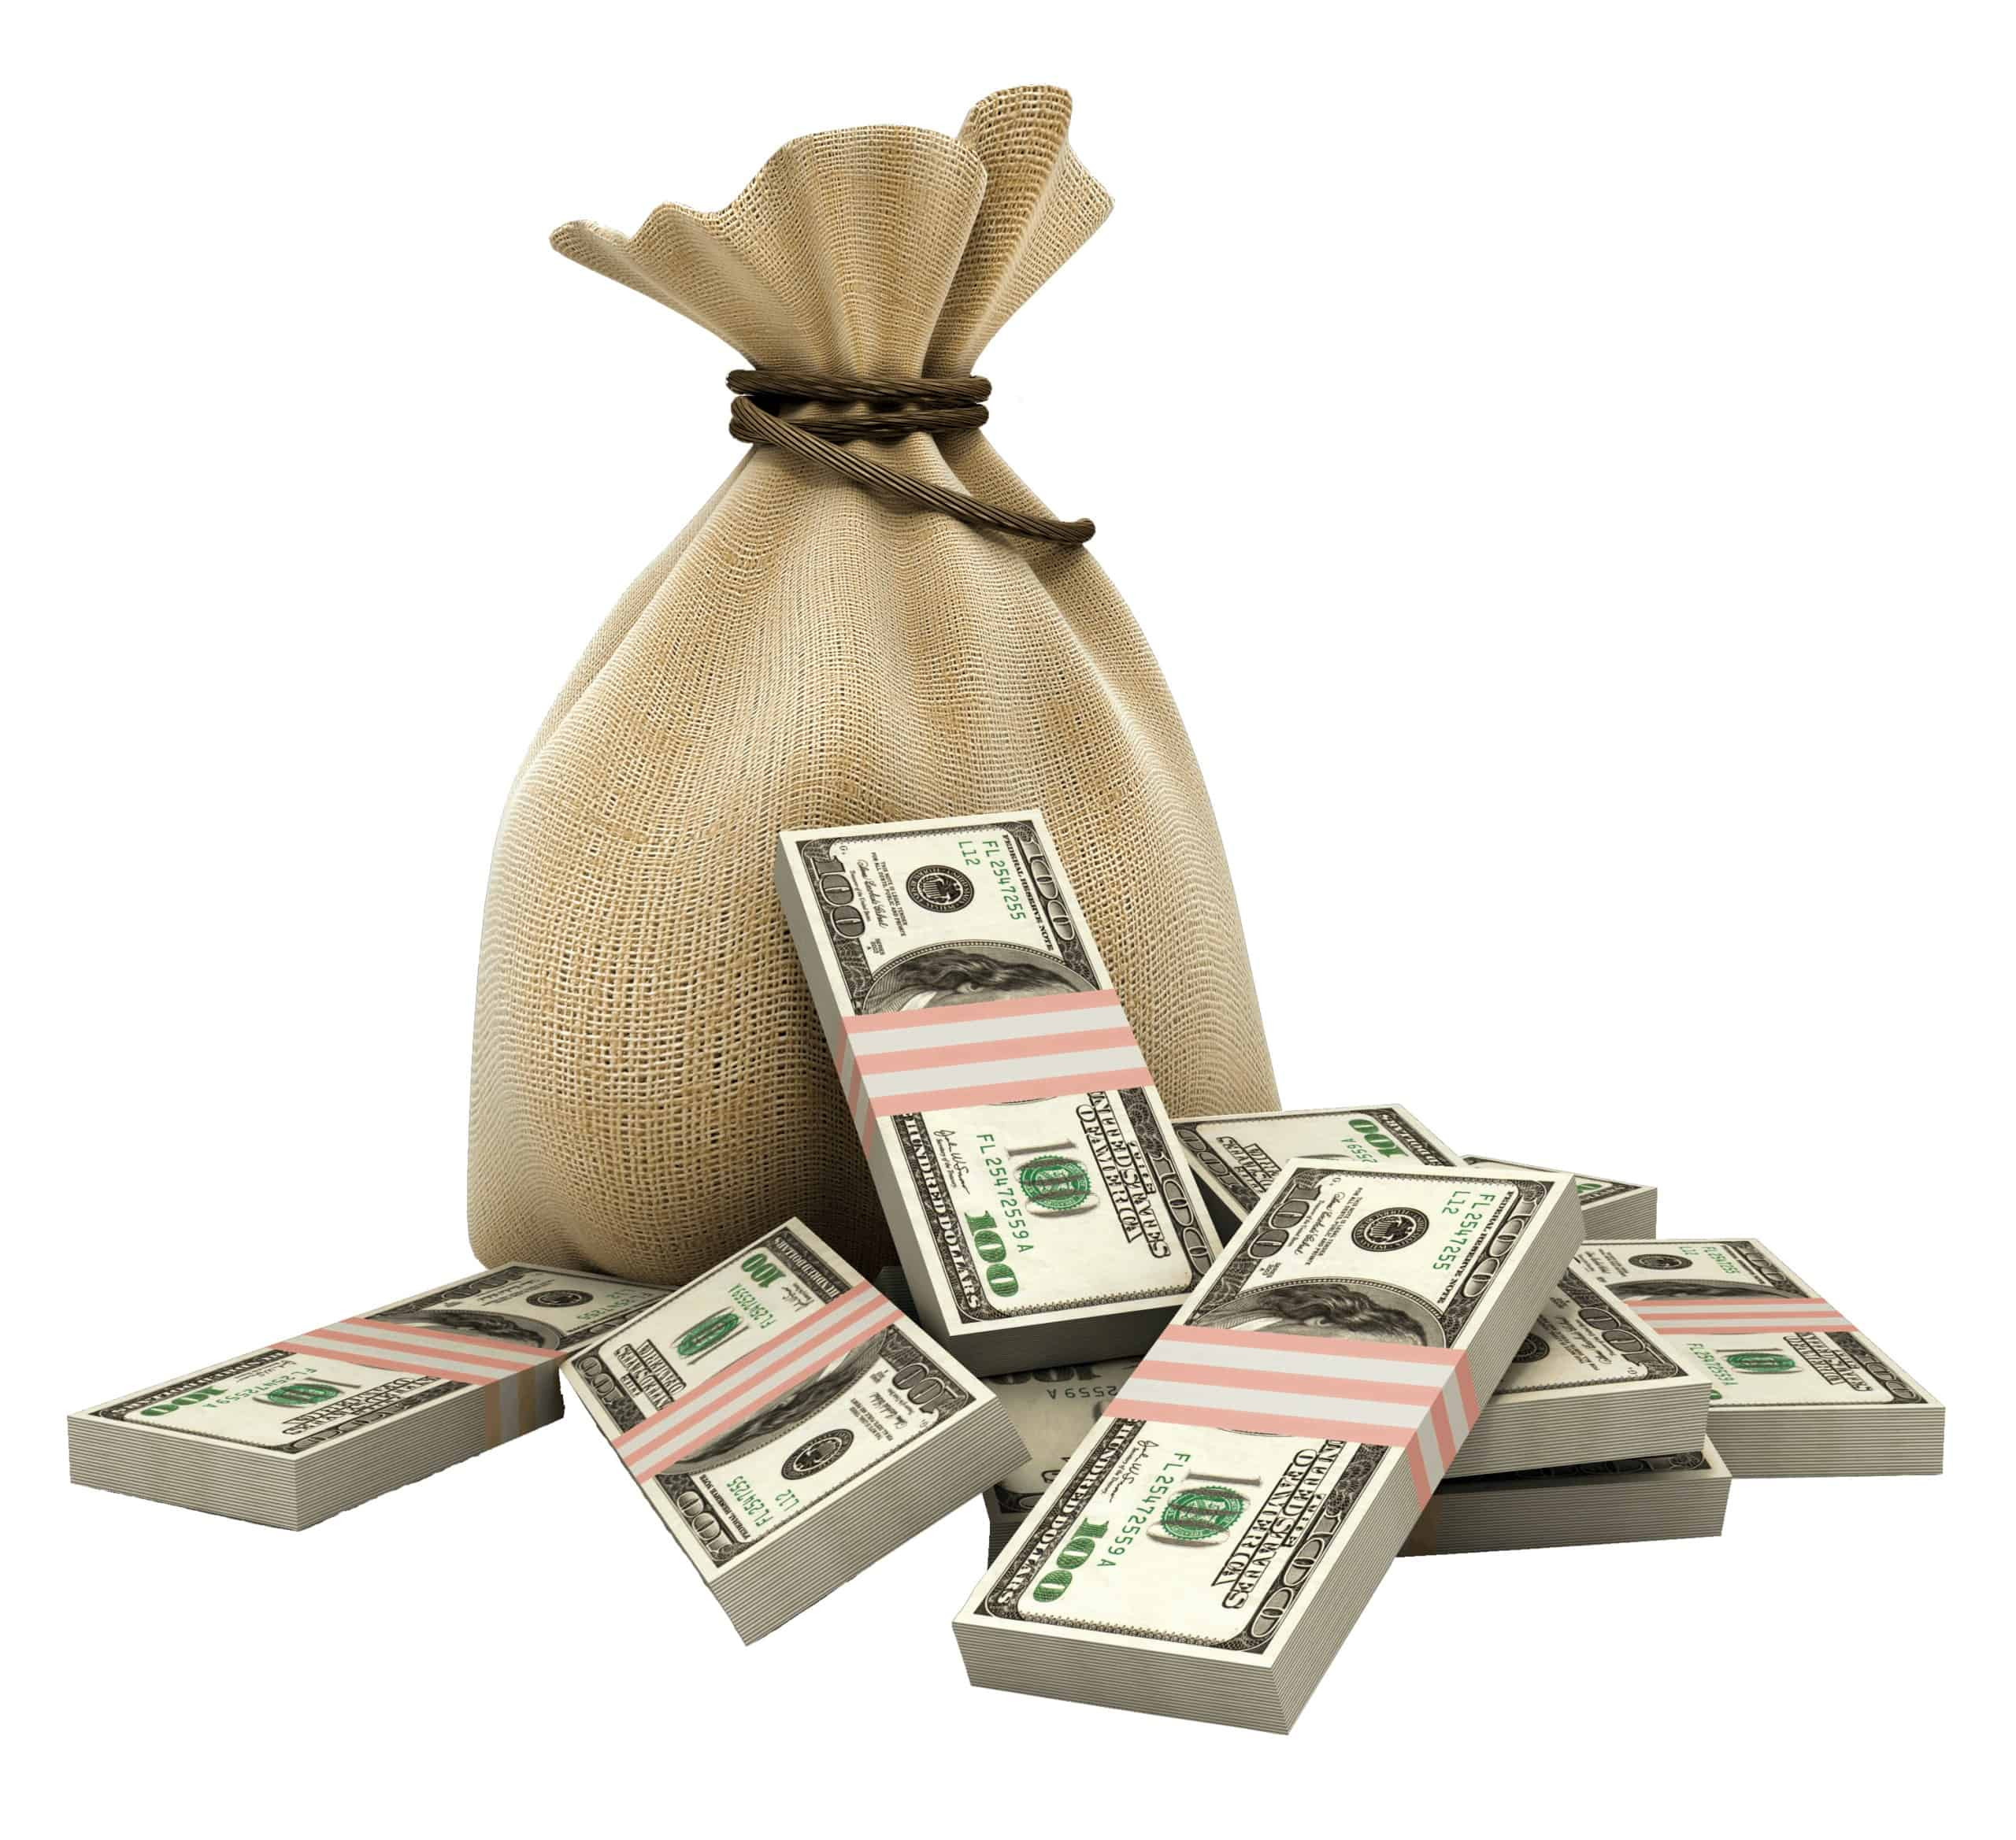 kisspng money bag installment loan united states dollar money 5a705c9c365f960025256415173131802227 Tired Of Being Poor? 13 Steps To Change Your Life!